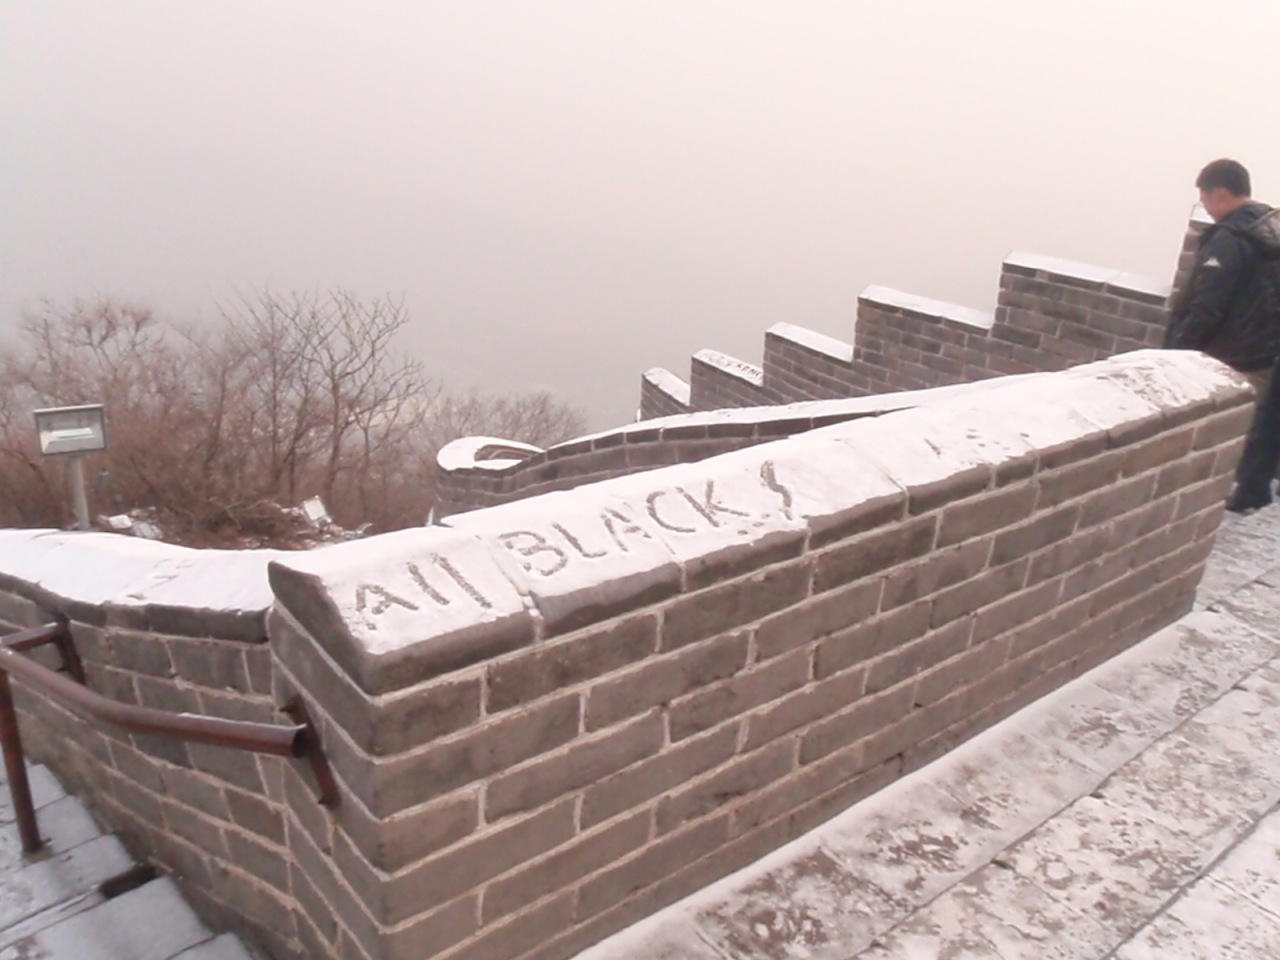 Mission to China – Part 3: The Great Wall